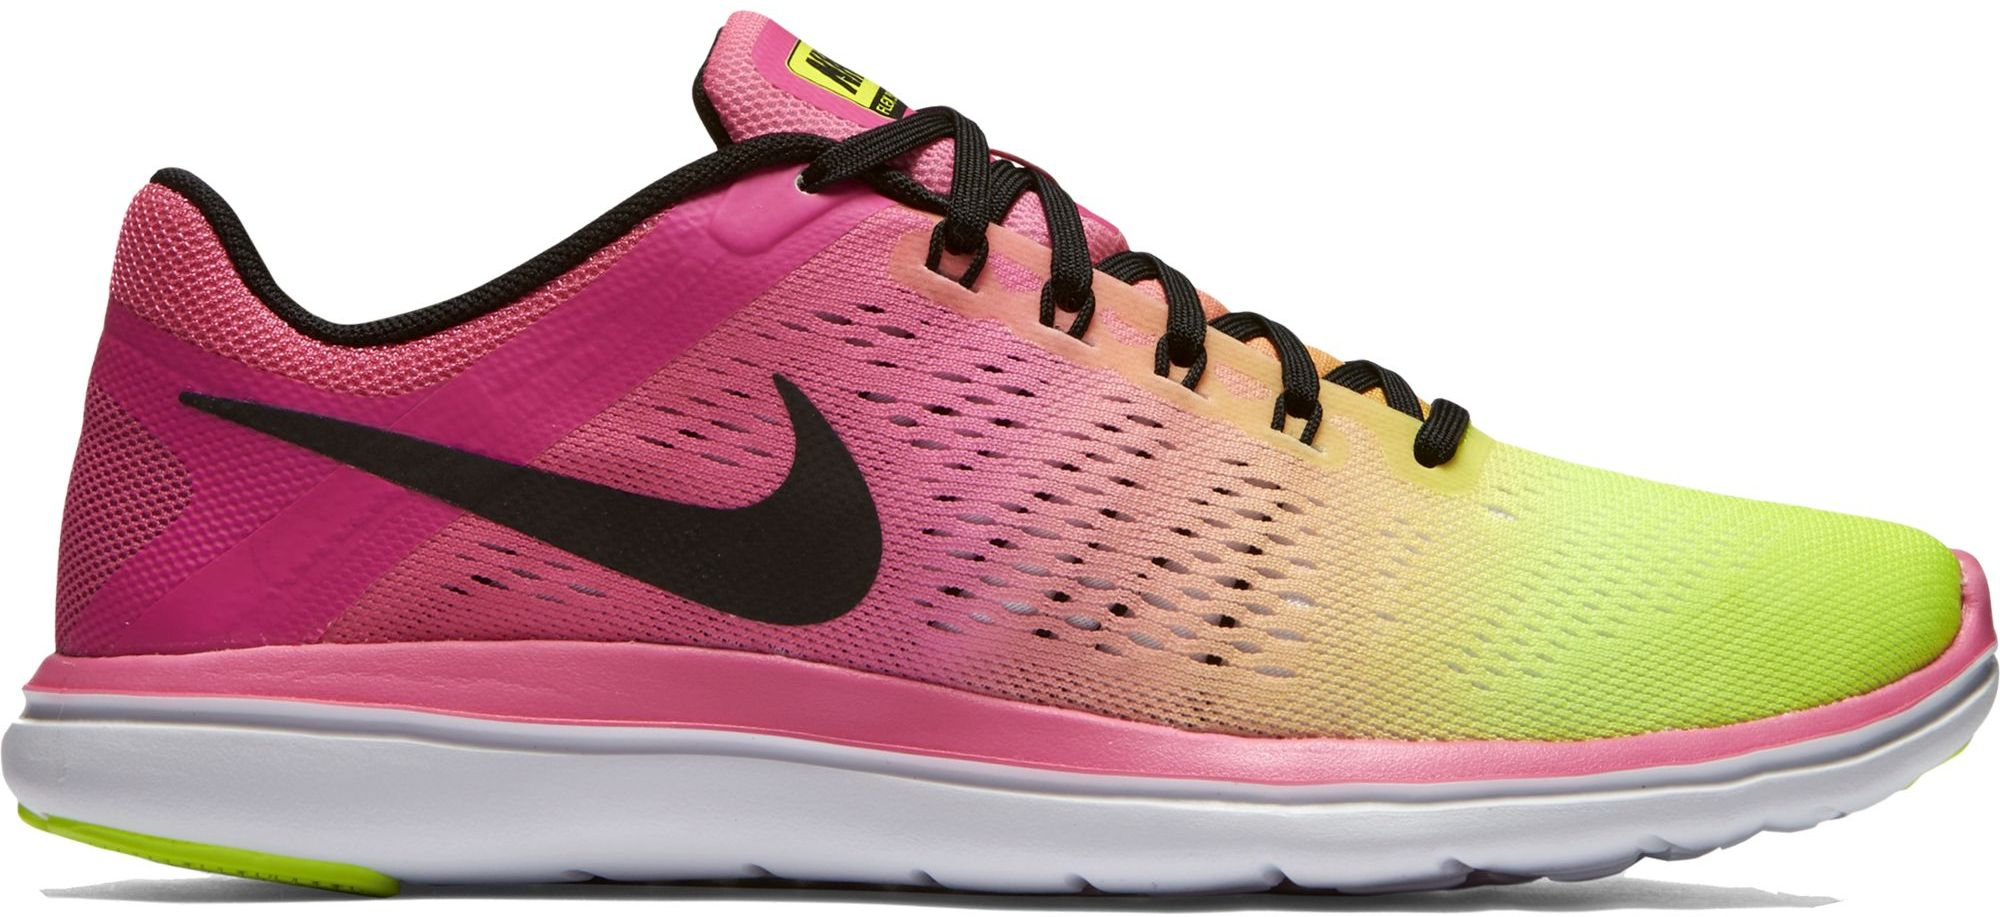 Nike Multicolor Shoes Womens